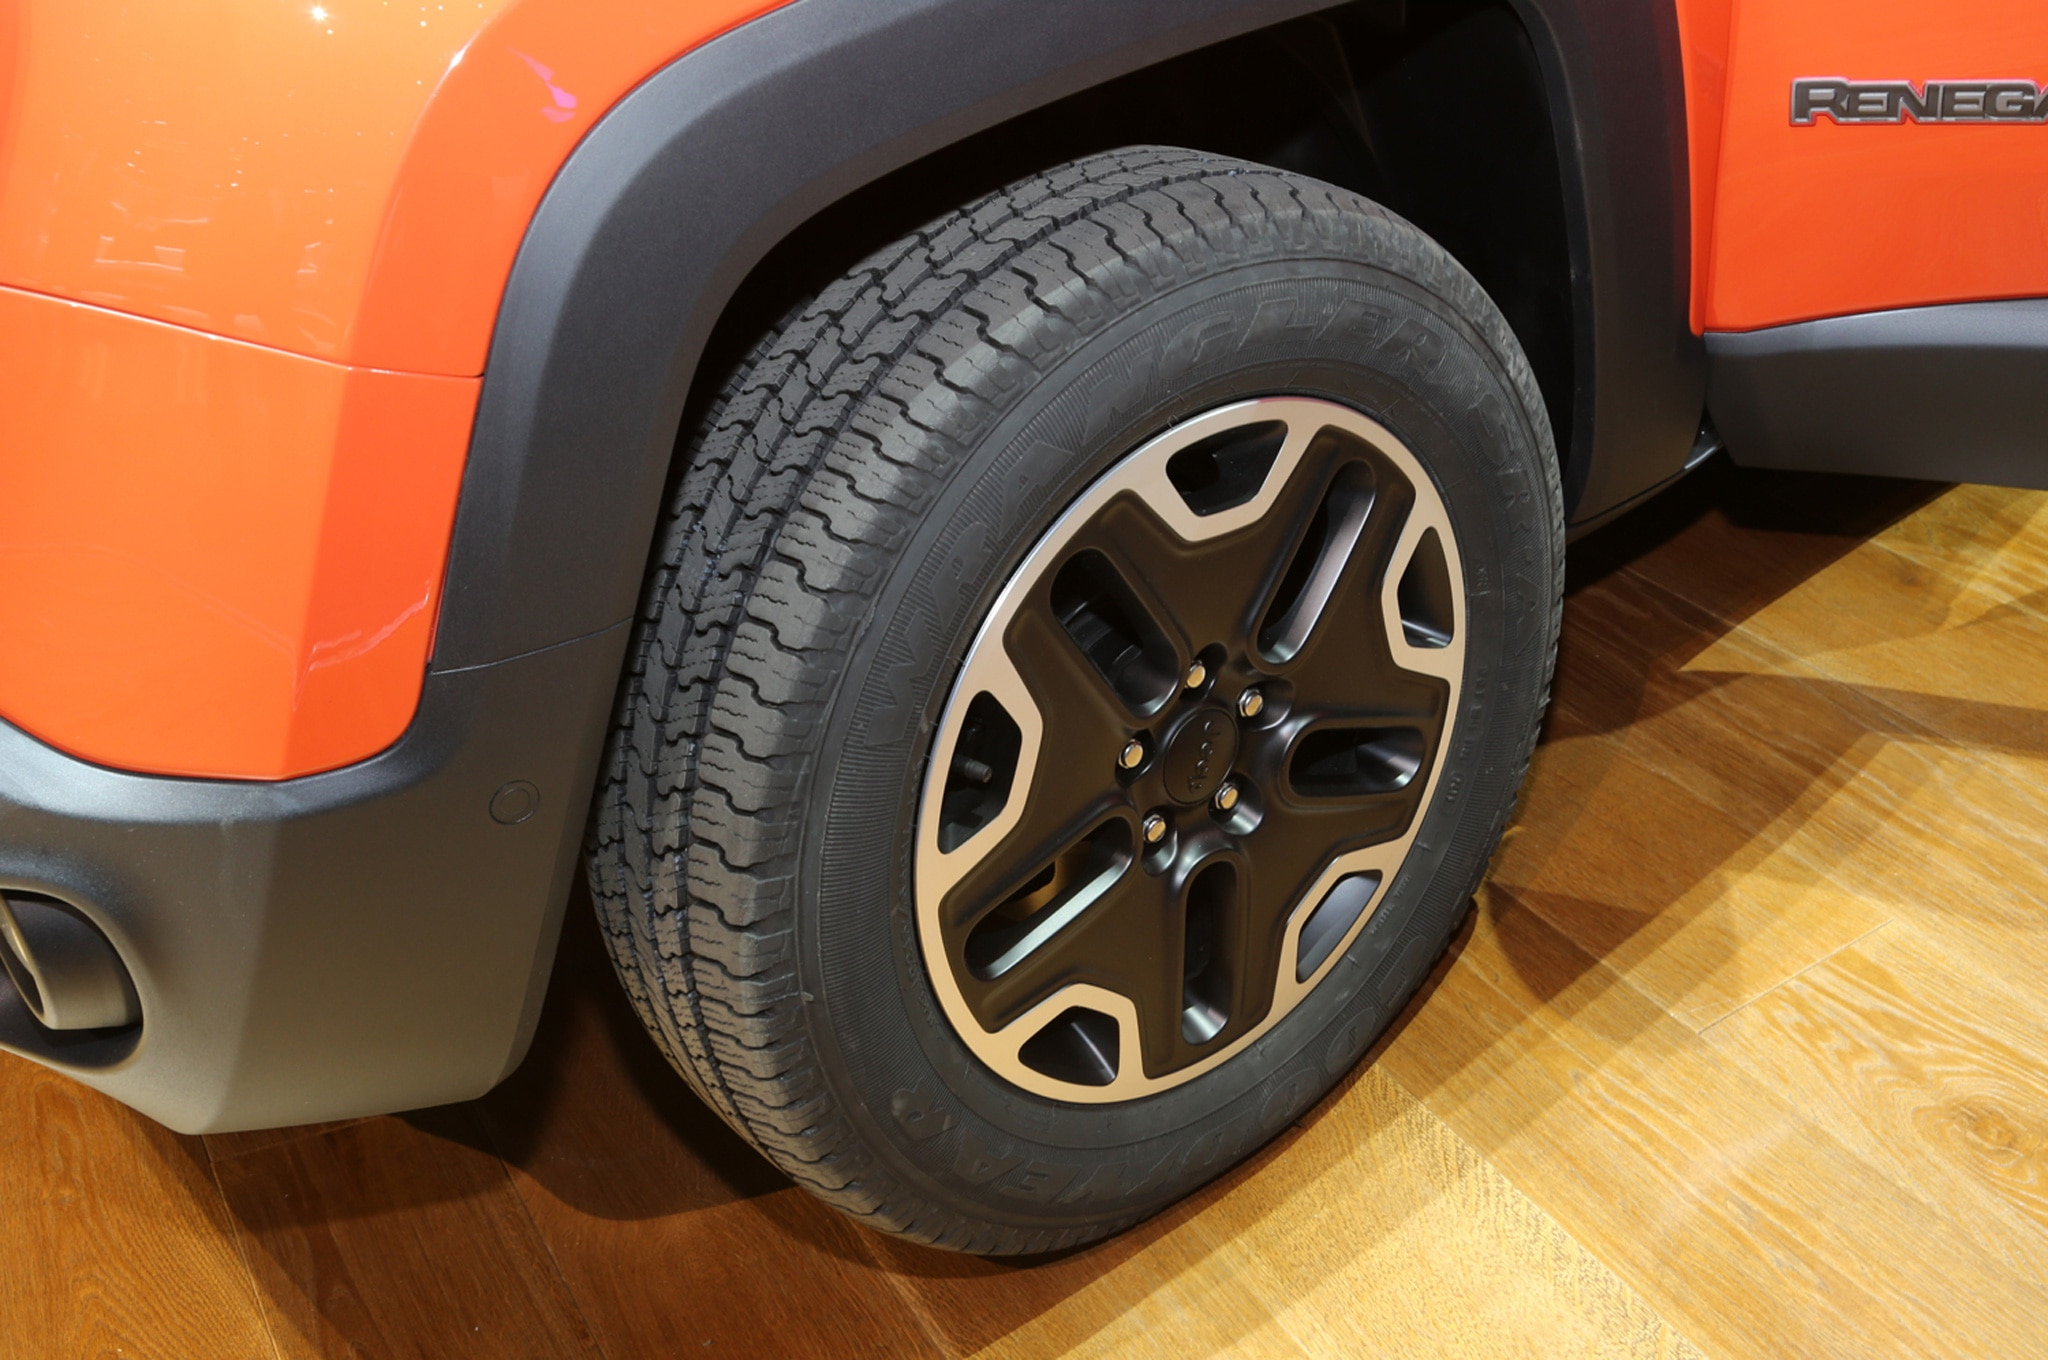 2015 Jeep Renegade Trailhawk show floor wheel